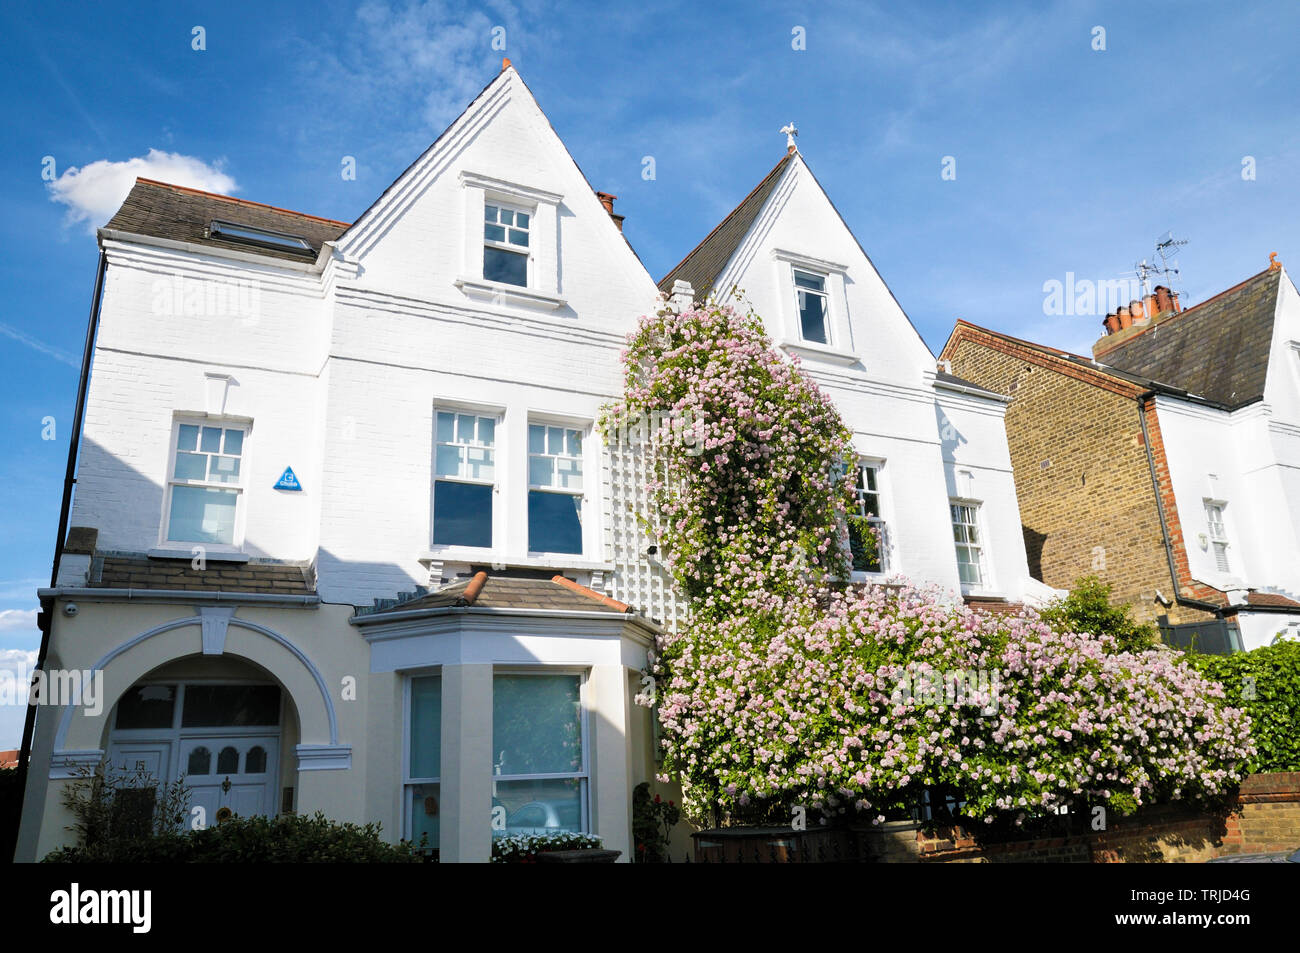 A period semi-detached house with a beautiful cascade of pink roses, London, England, UK Stock Photo